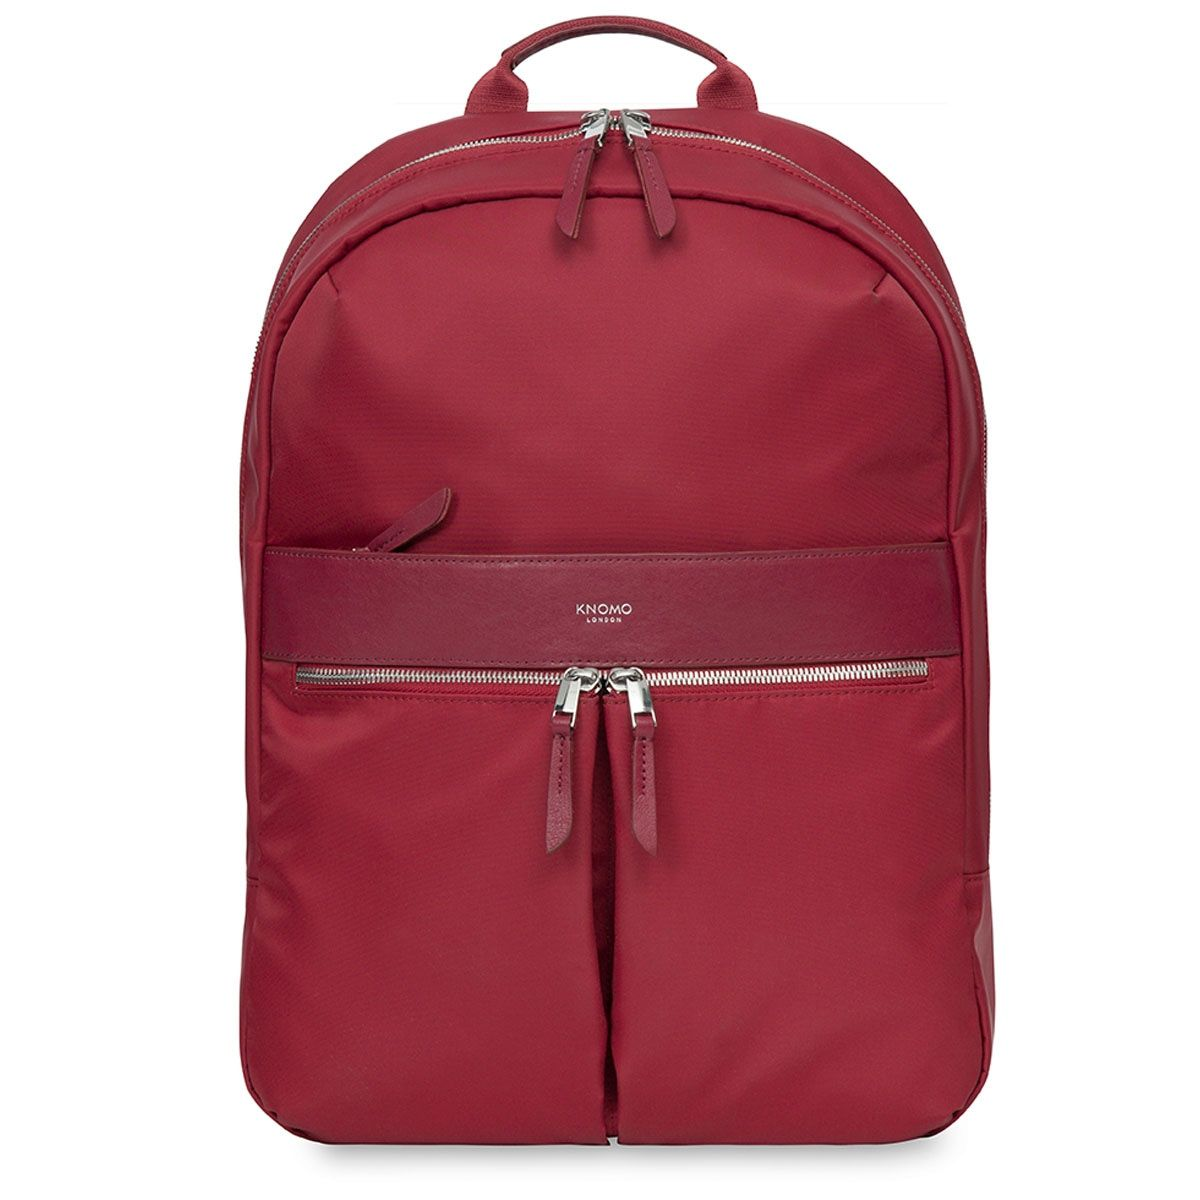 ec5e2875c82 Laptop rugzak Knomo Beauchamp Backpack Cherry 14 inch